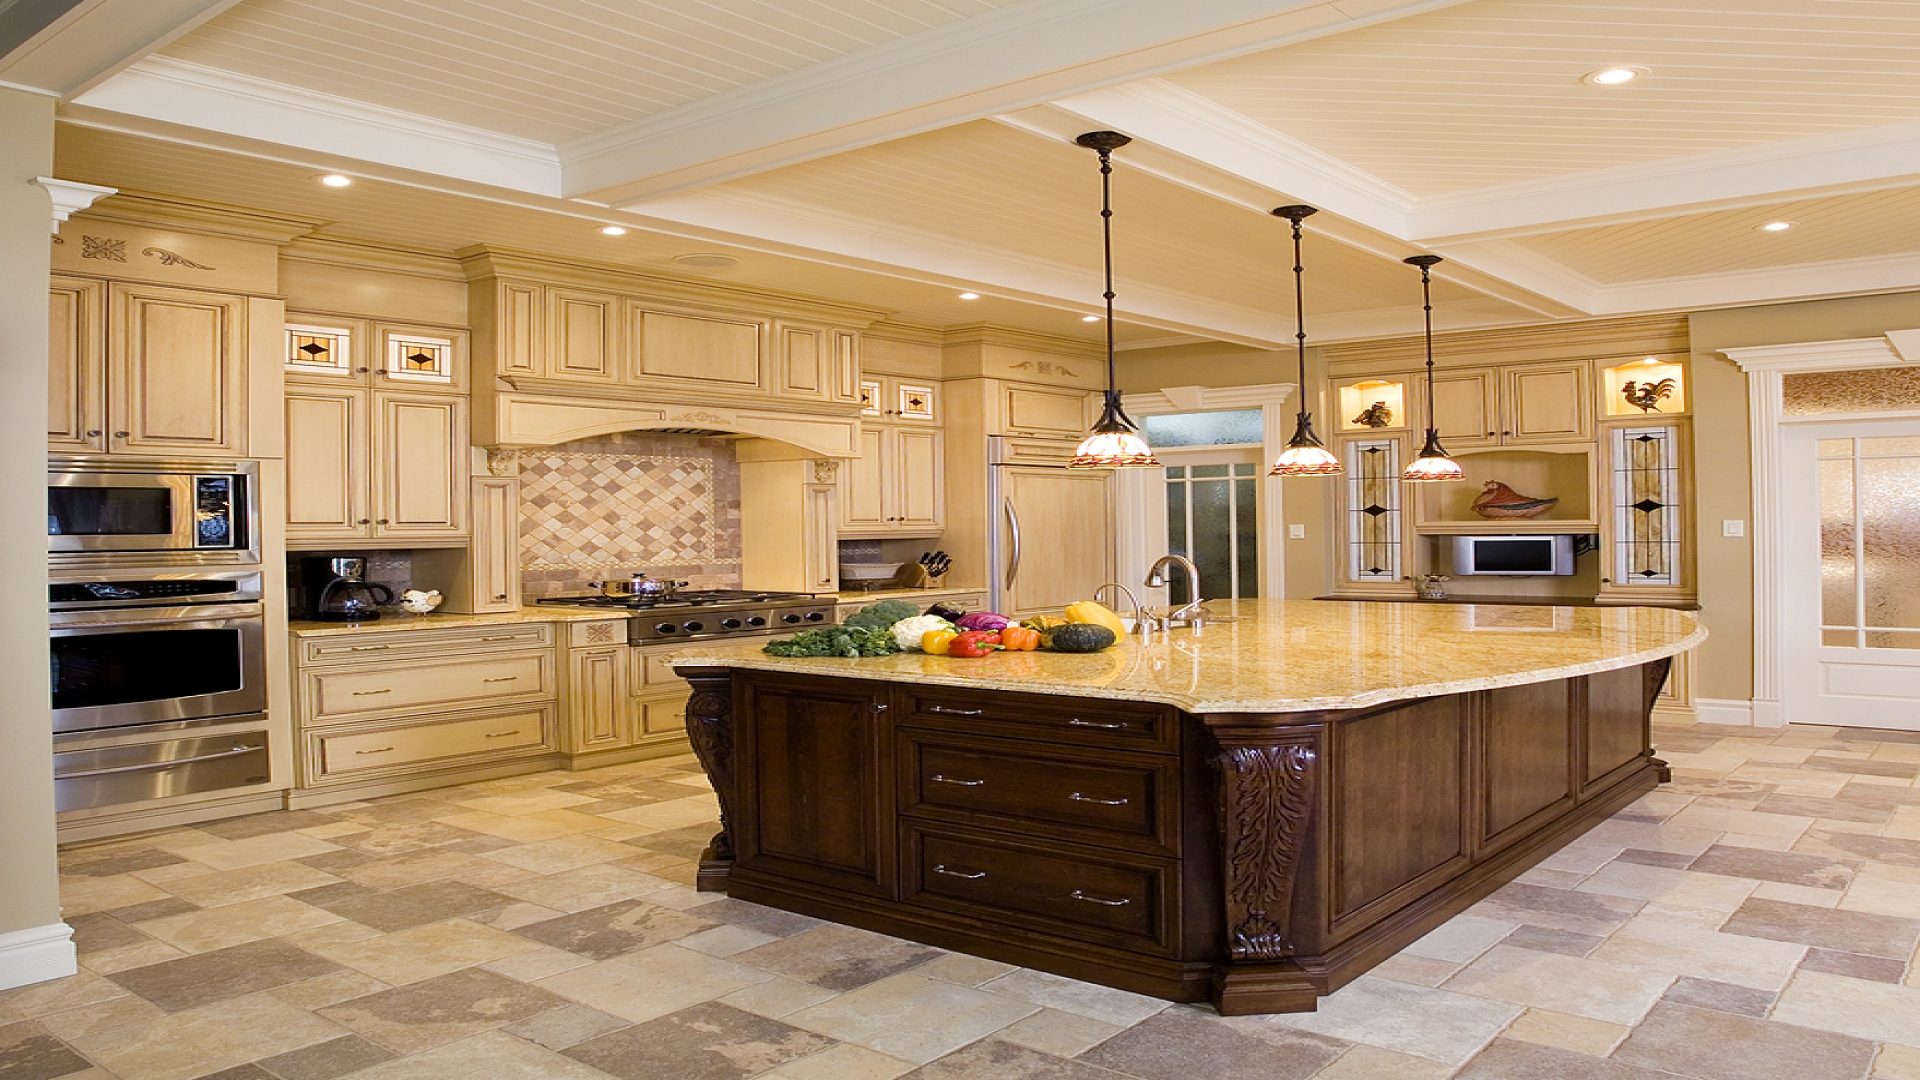 Kitchen remodeling ideas pictures photos - Kitchen remodel designs ...